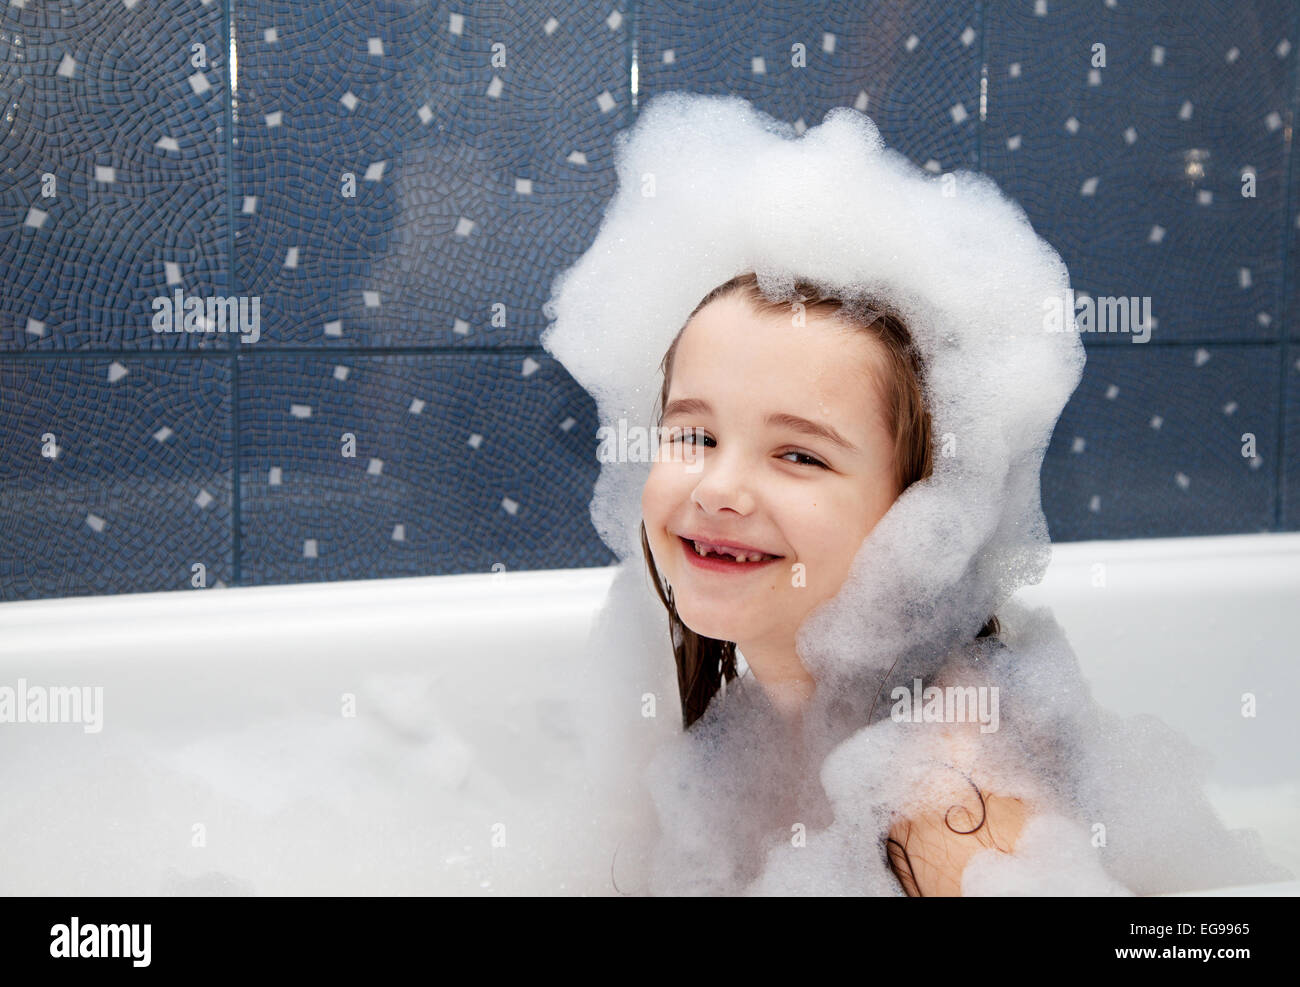 smiling little girl sitting in a bath with soap suds - Stock Image